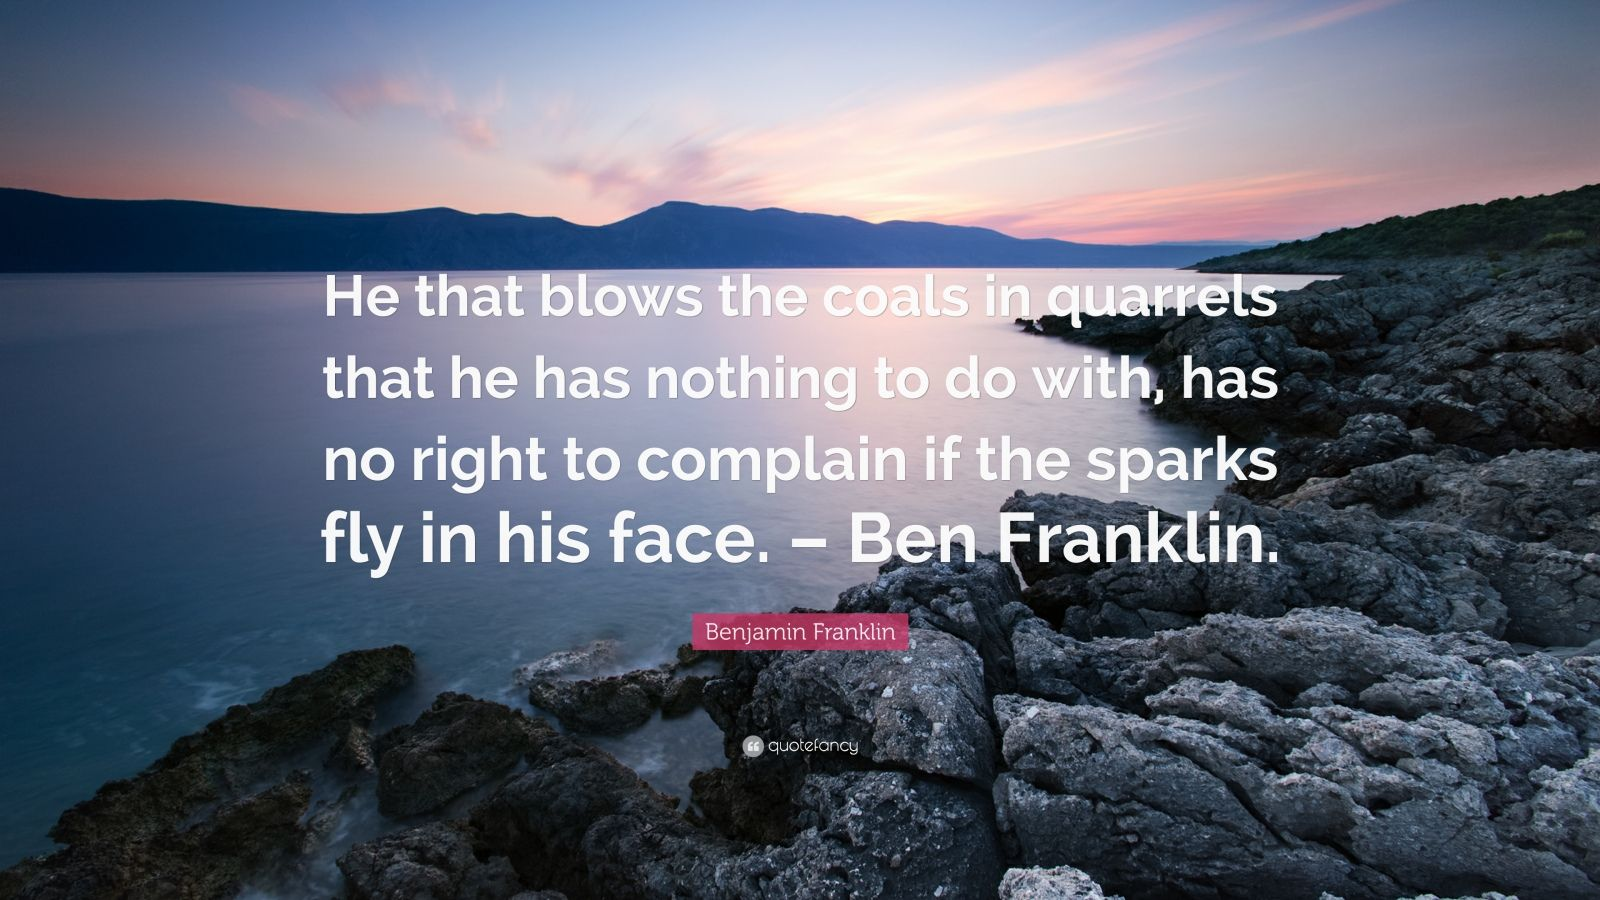 "Benjamin Franklin Quote: ""He that blows the coals in quarrels that he has nothing to do with, has no right to complain if the sparks fly in his face. – Ben Franklin."""